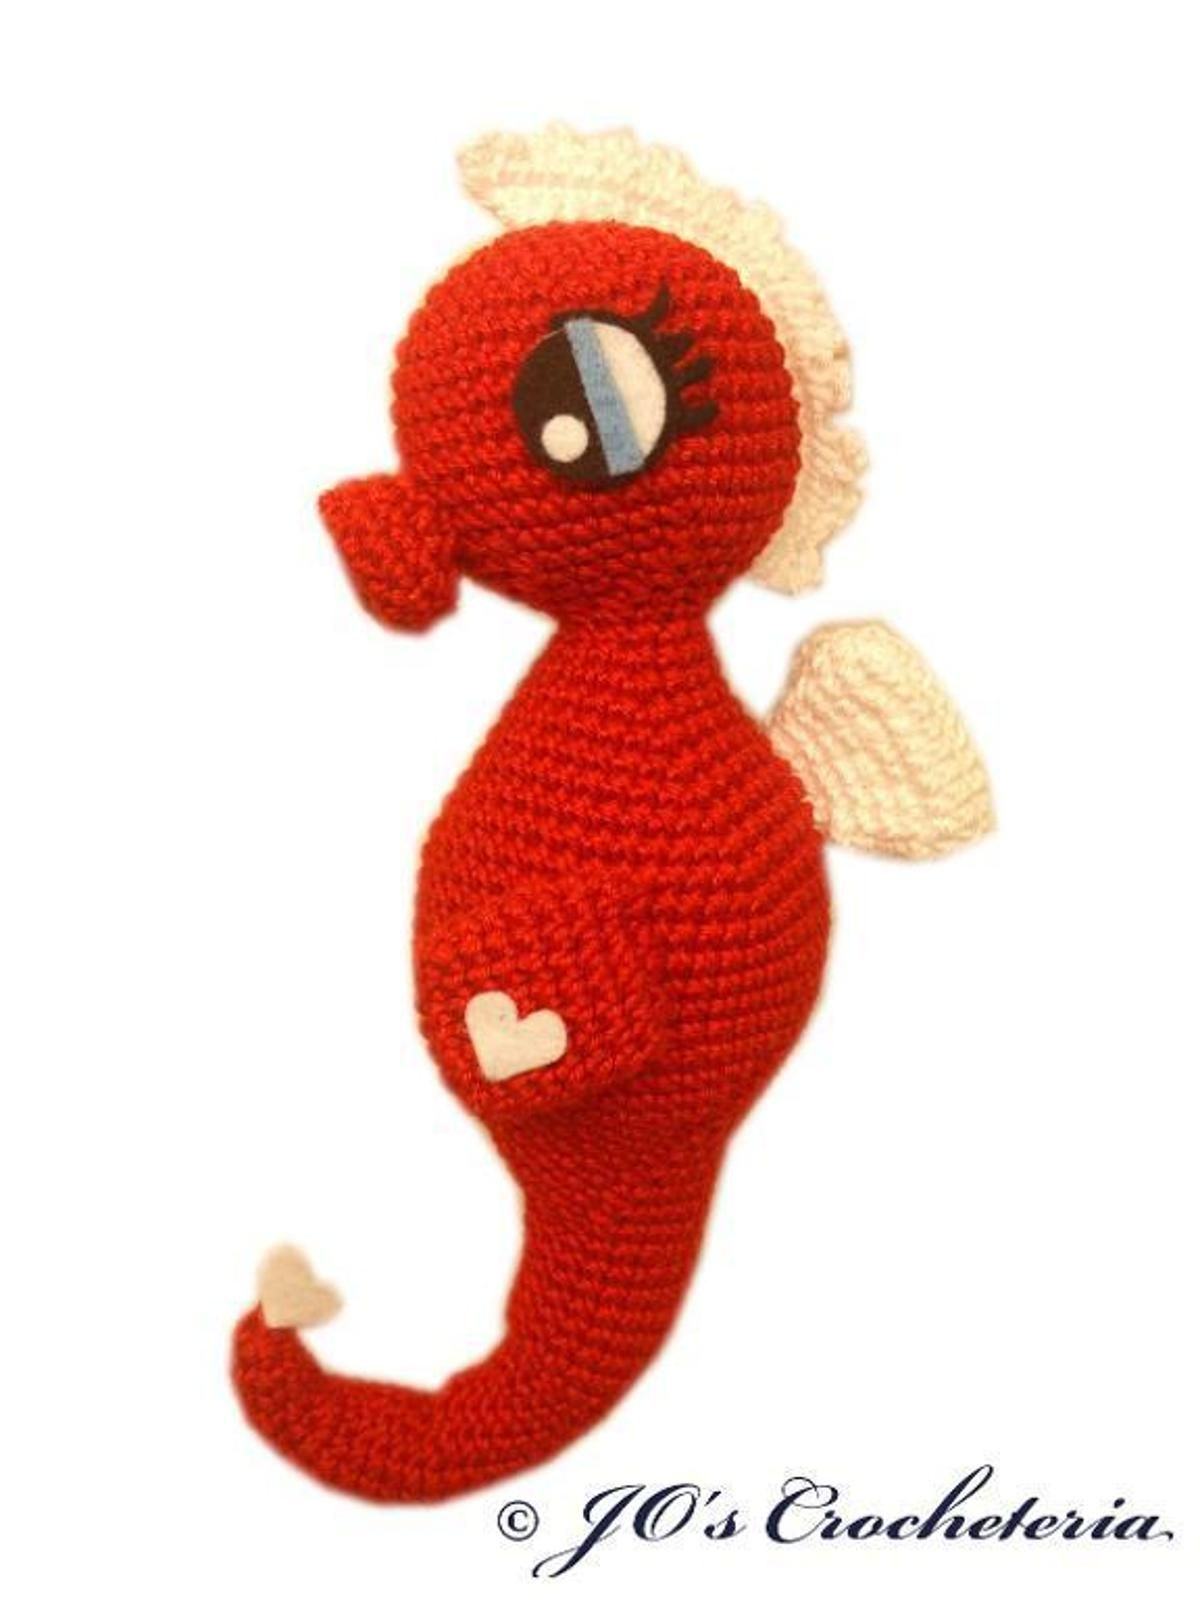 Crochet aurora the seahorse pattern seahorses crocheting crochet aurora the seahorse pattern bankloansurffo Image collections